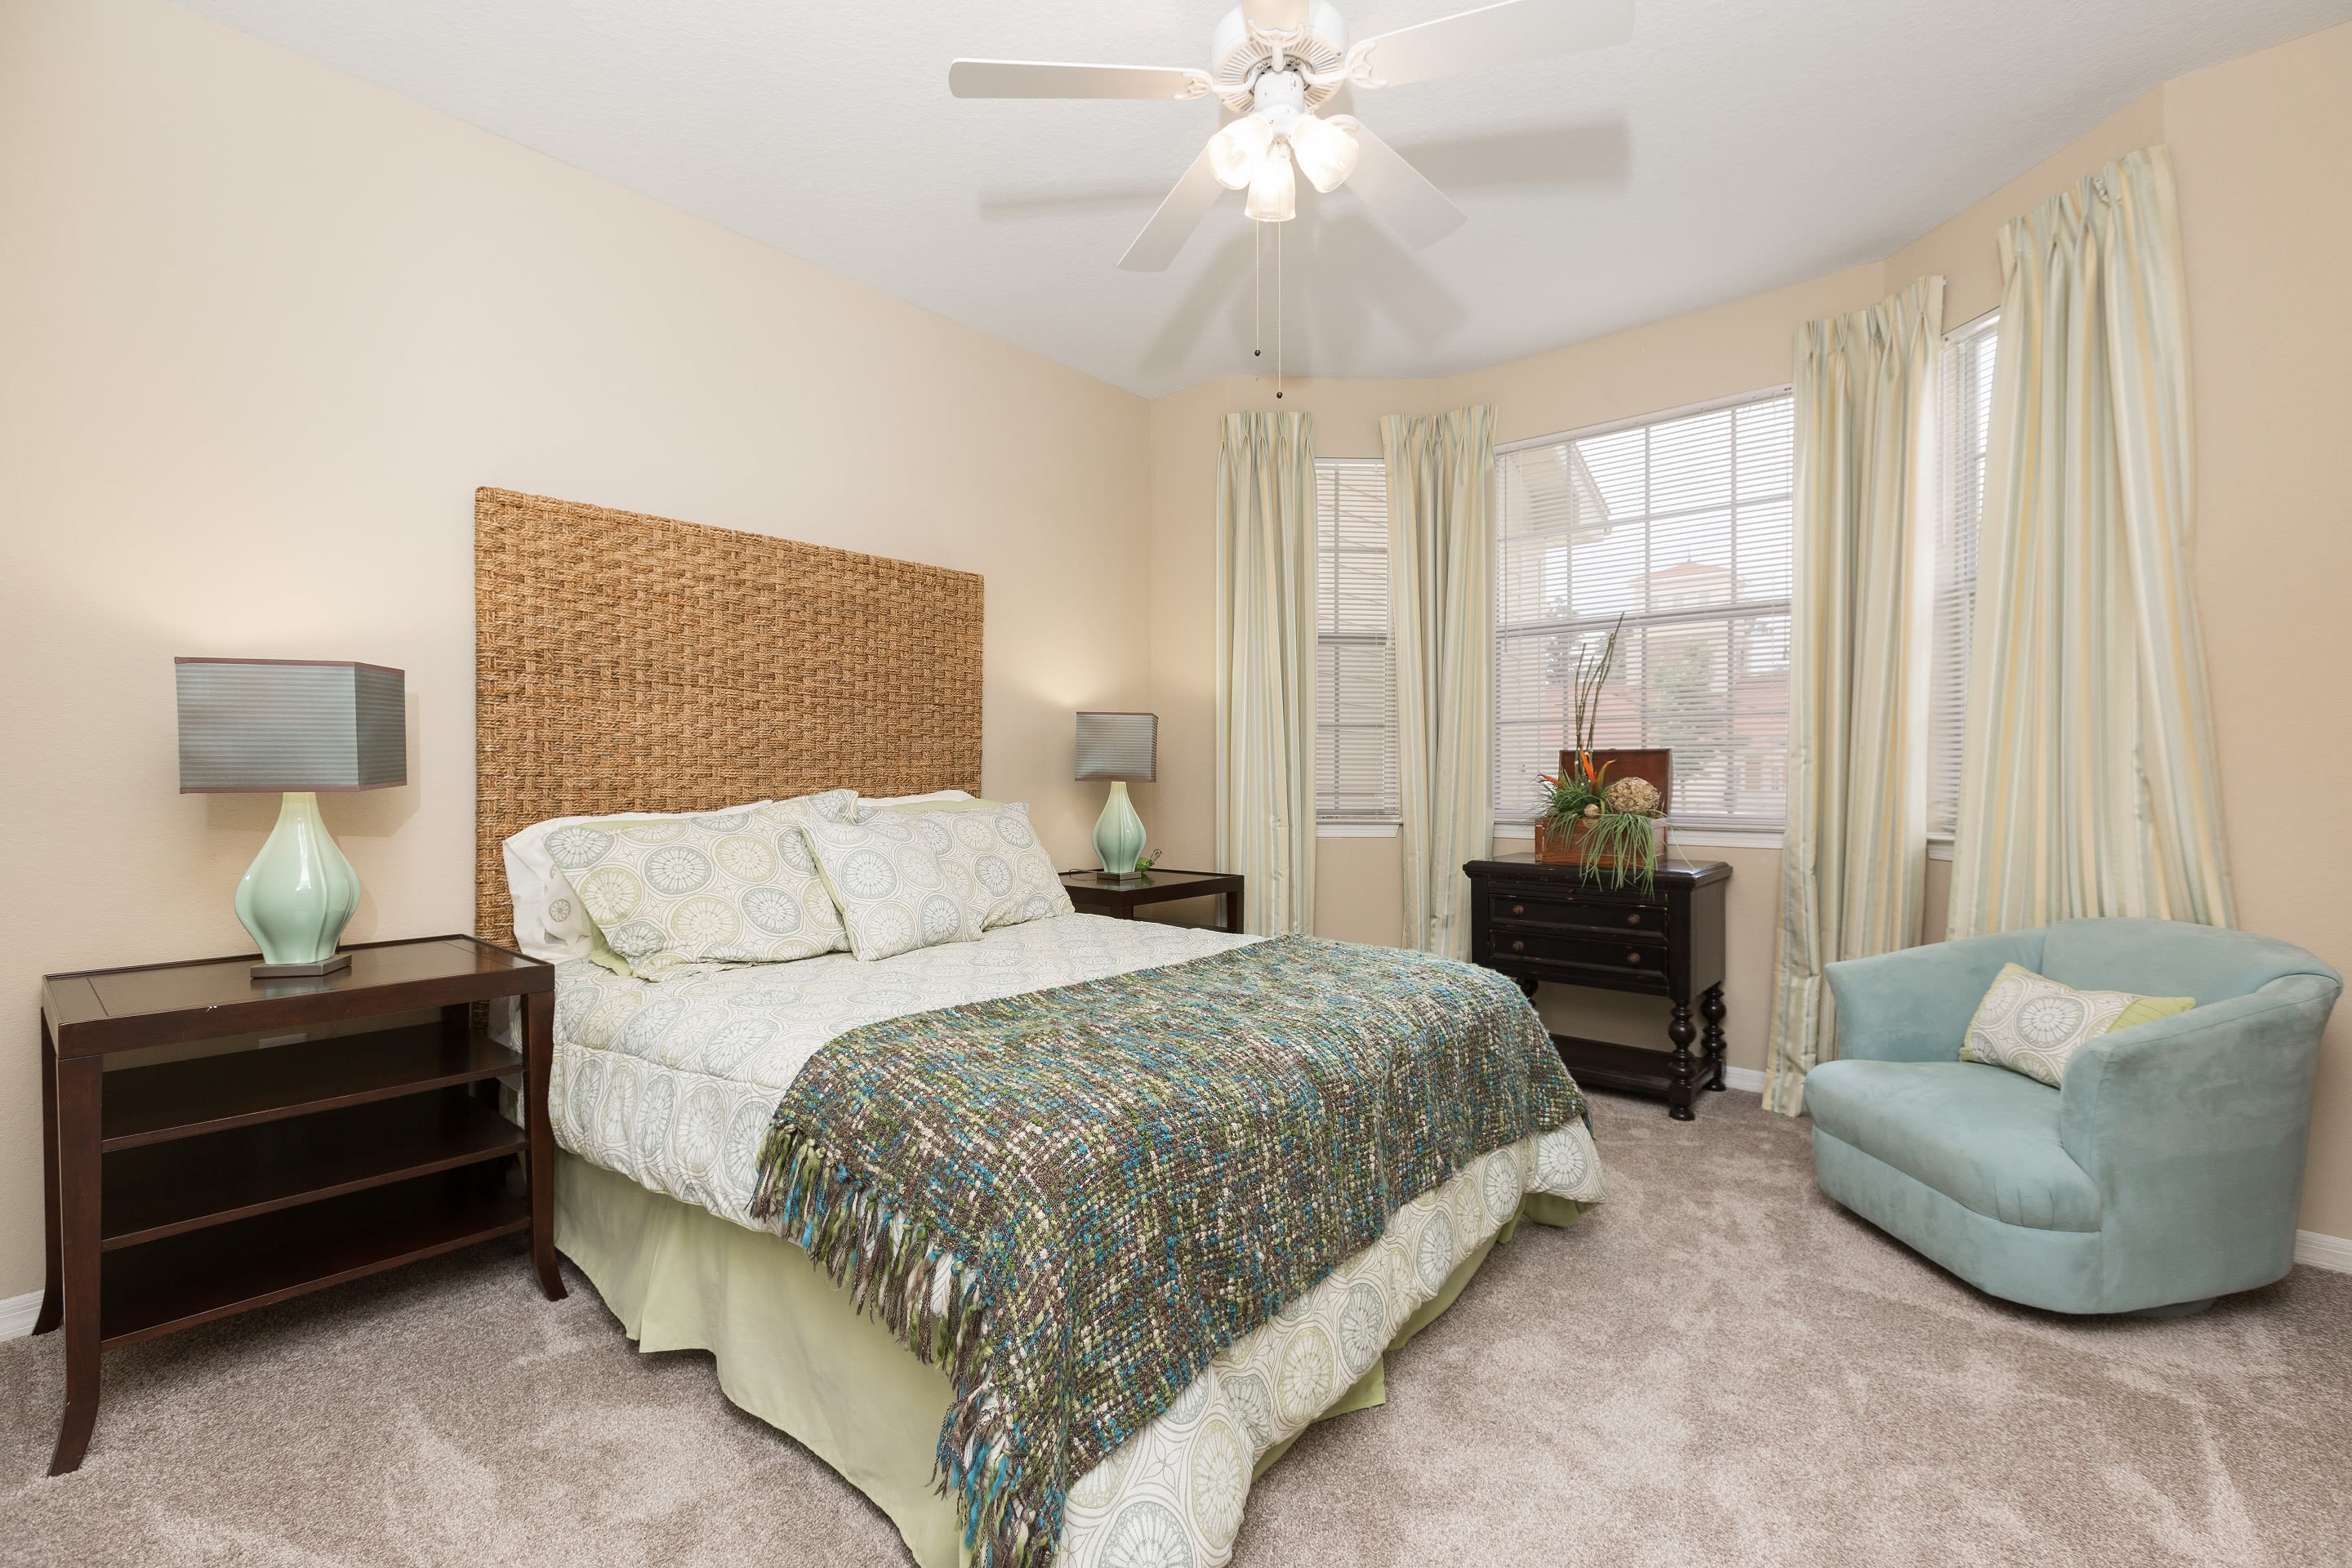 Bedroom at The Aspect in Kissimmee, Florida